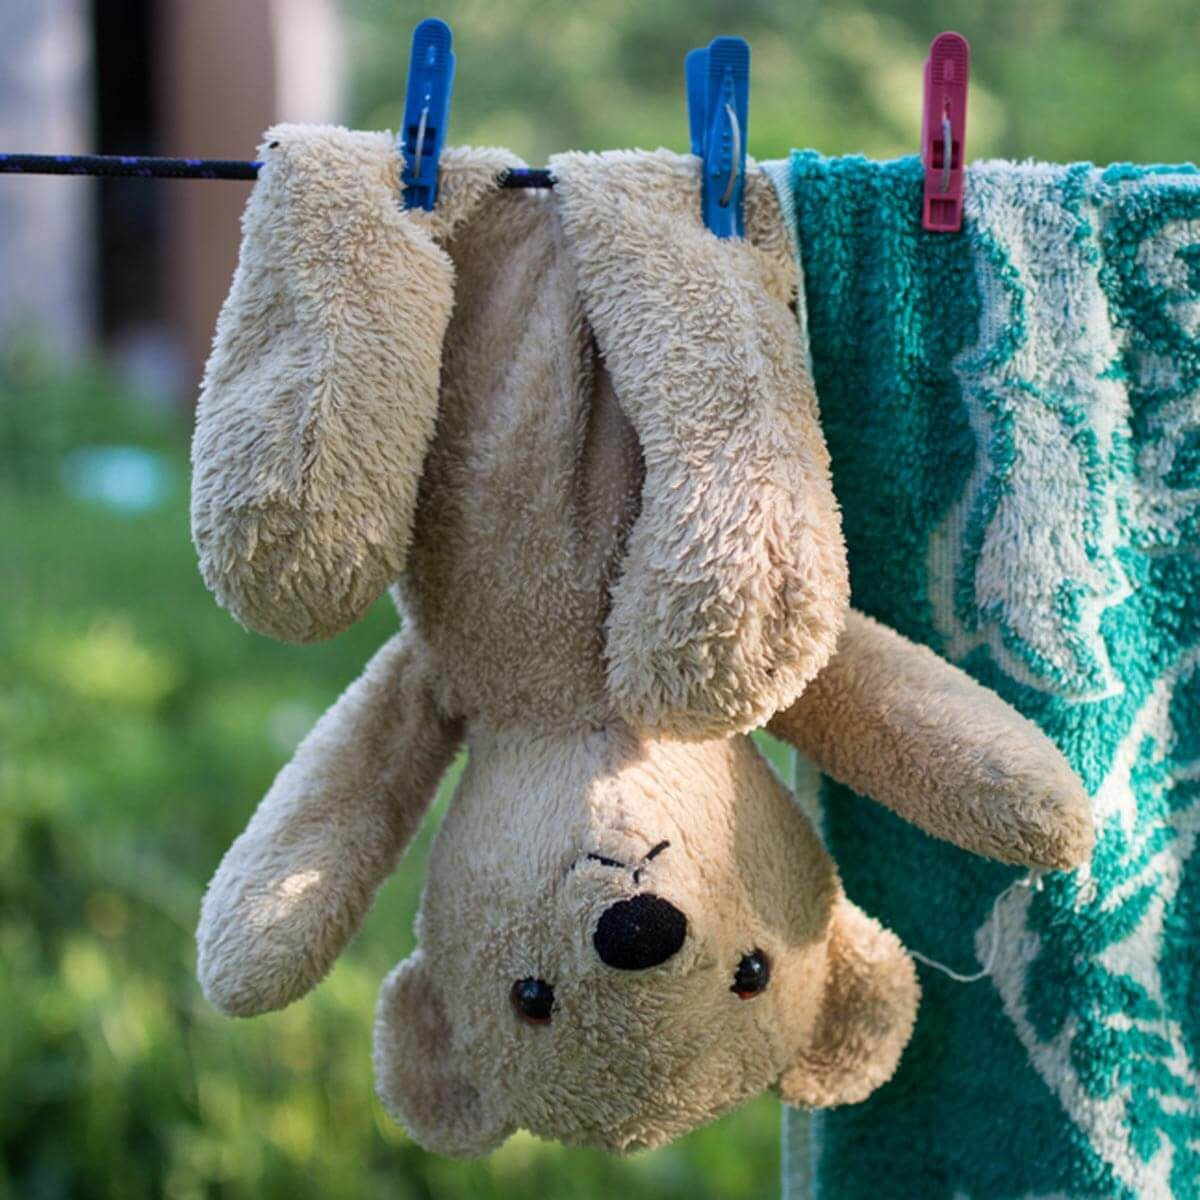 shutterstock_434304847 wash hang dry stuffed animal teddy bear